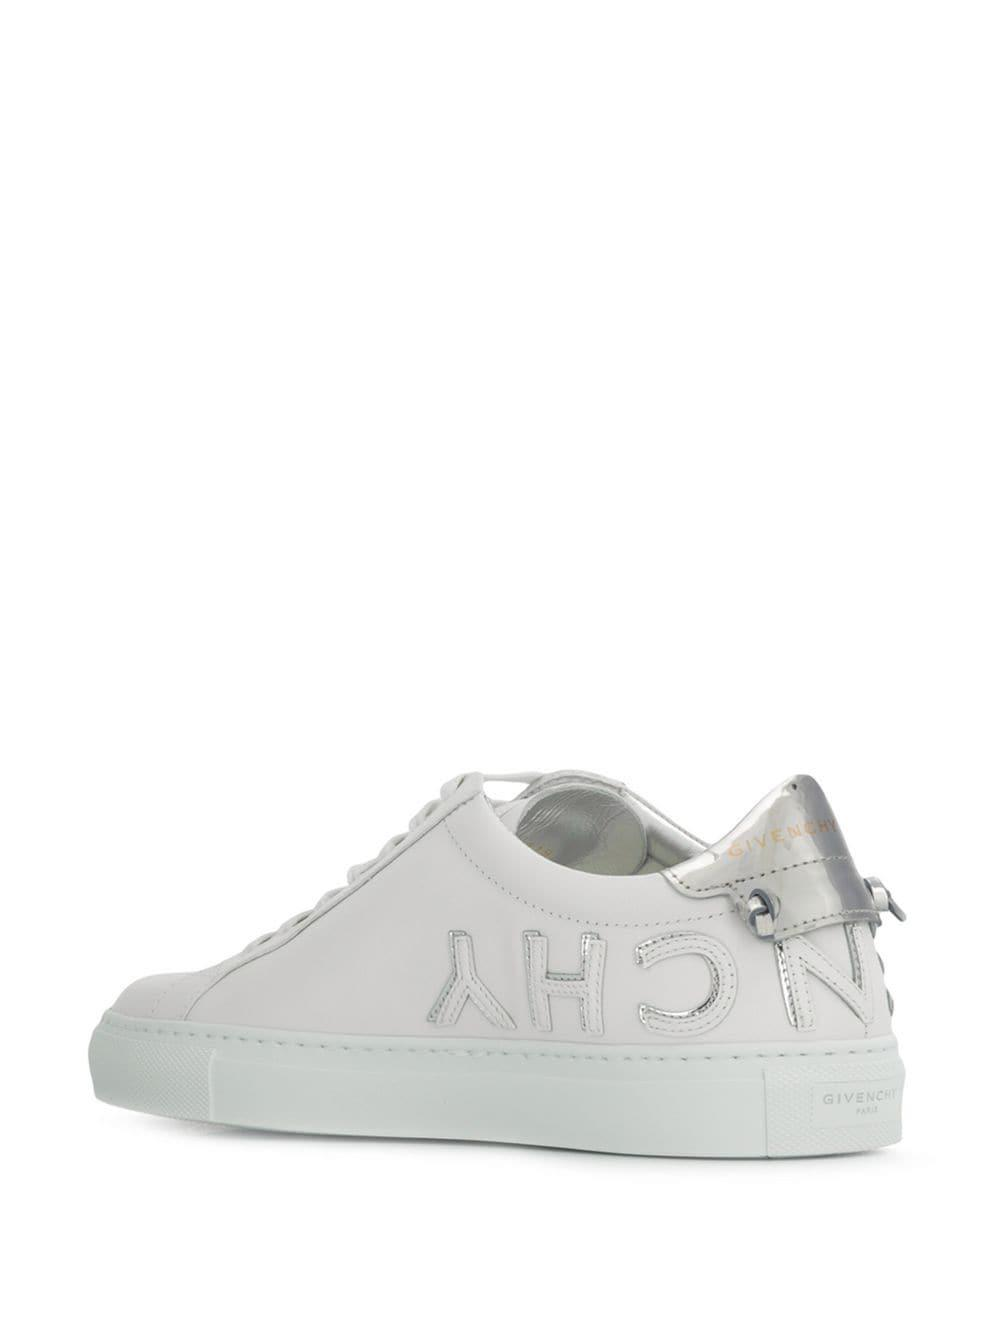 4aa84b9c8ba6c Lyst - Givenchy Urban Street Leather Sneakers in White